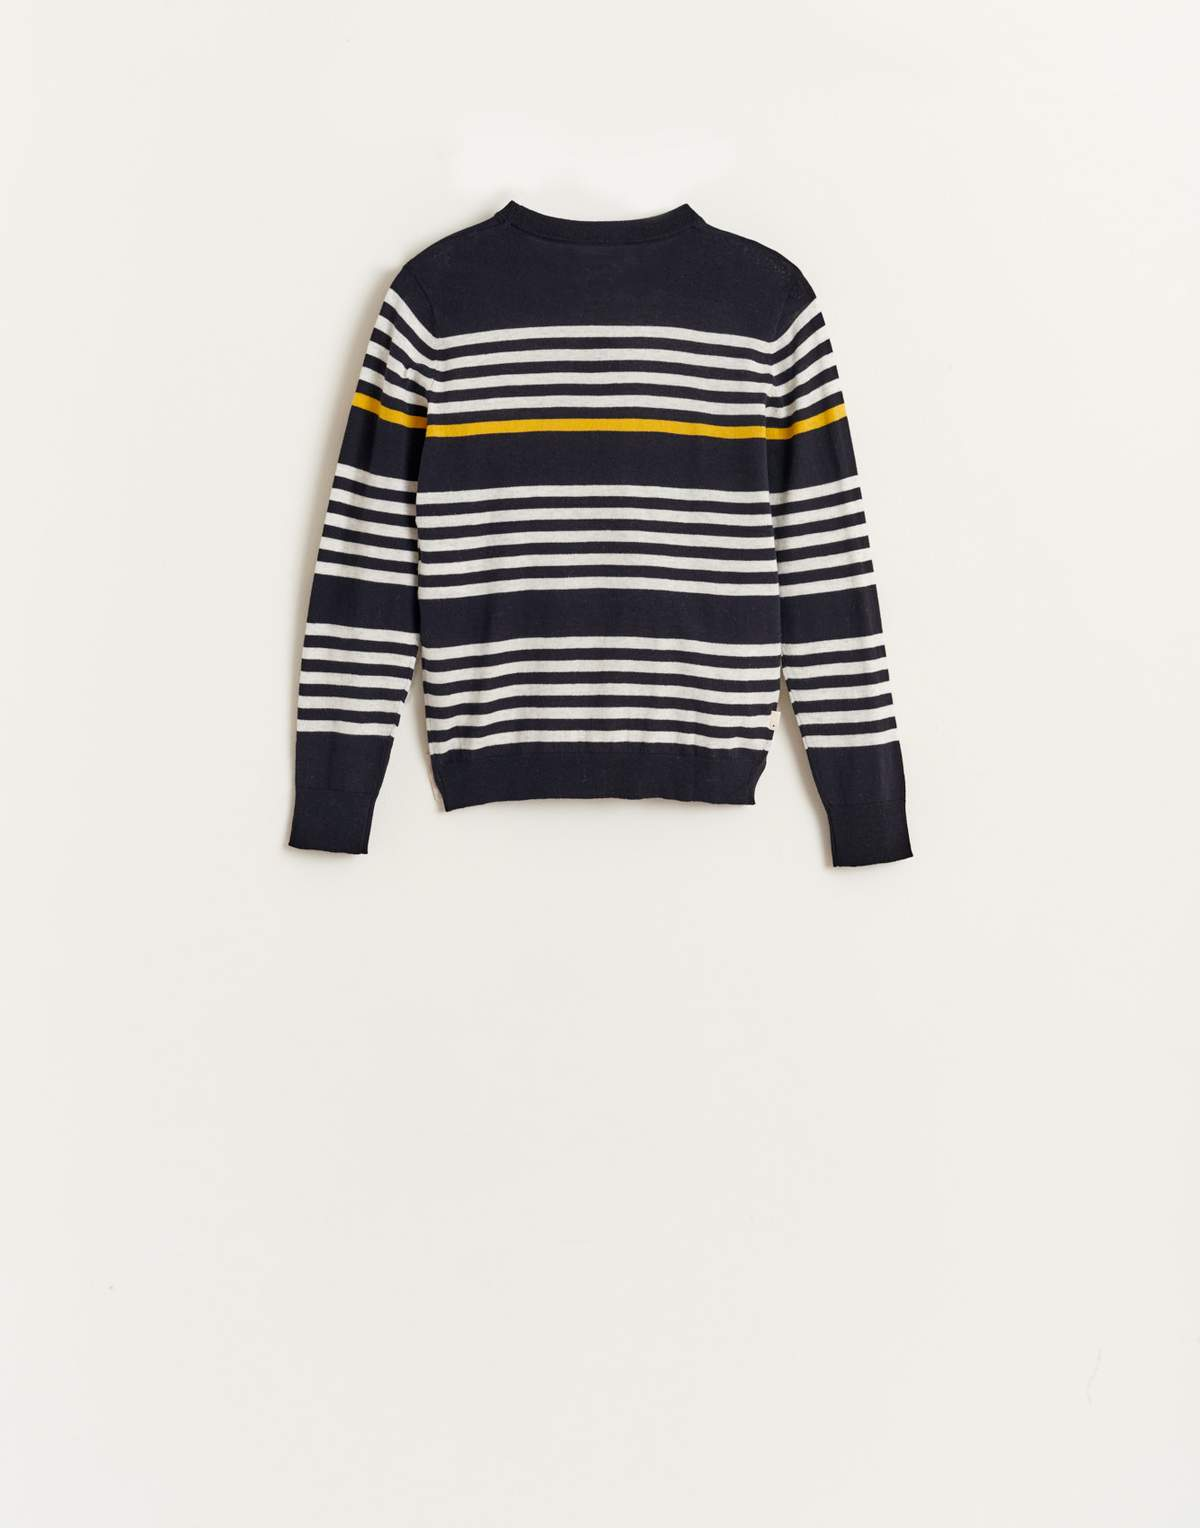 GAROU Knitted Sweatshirt | BOY